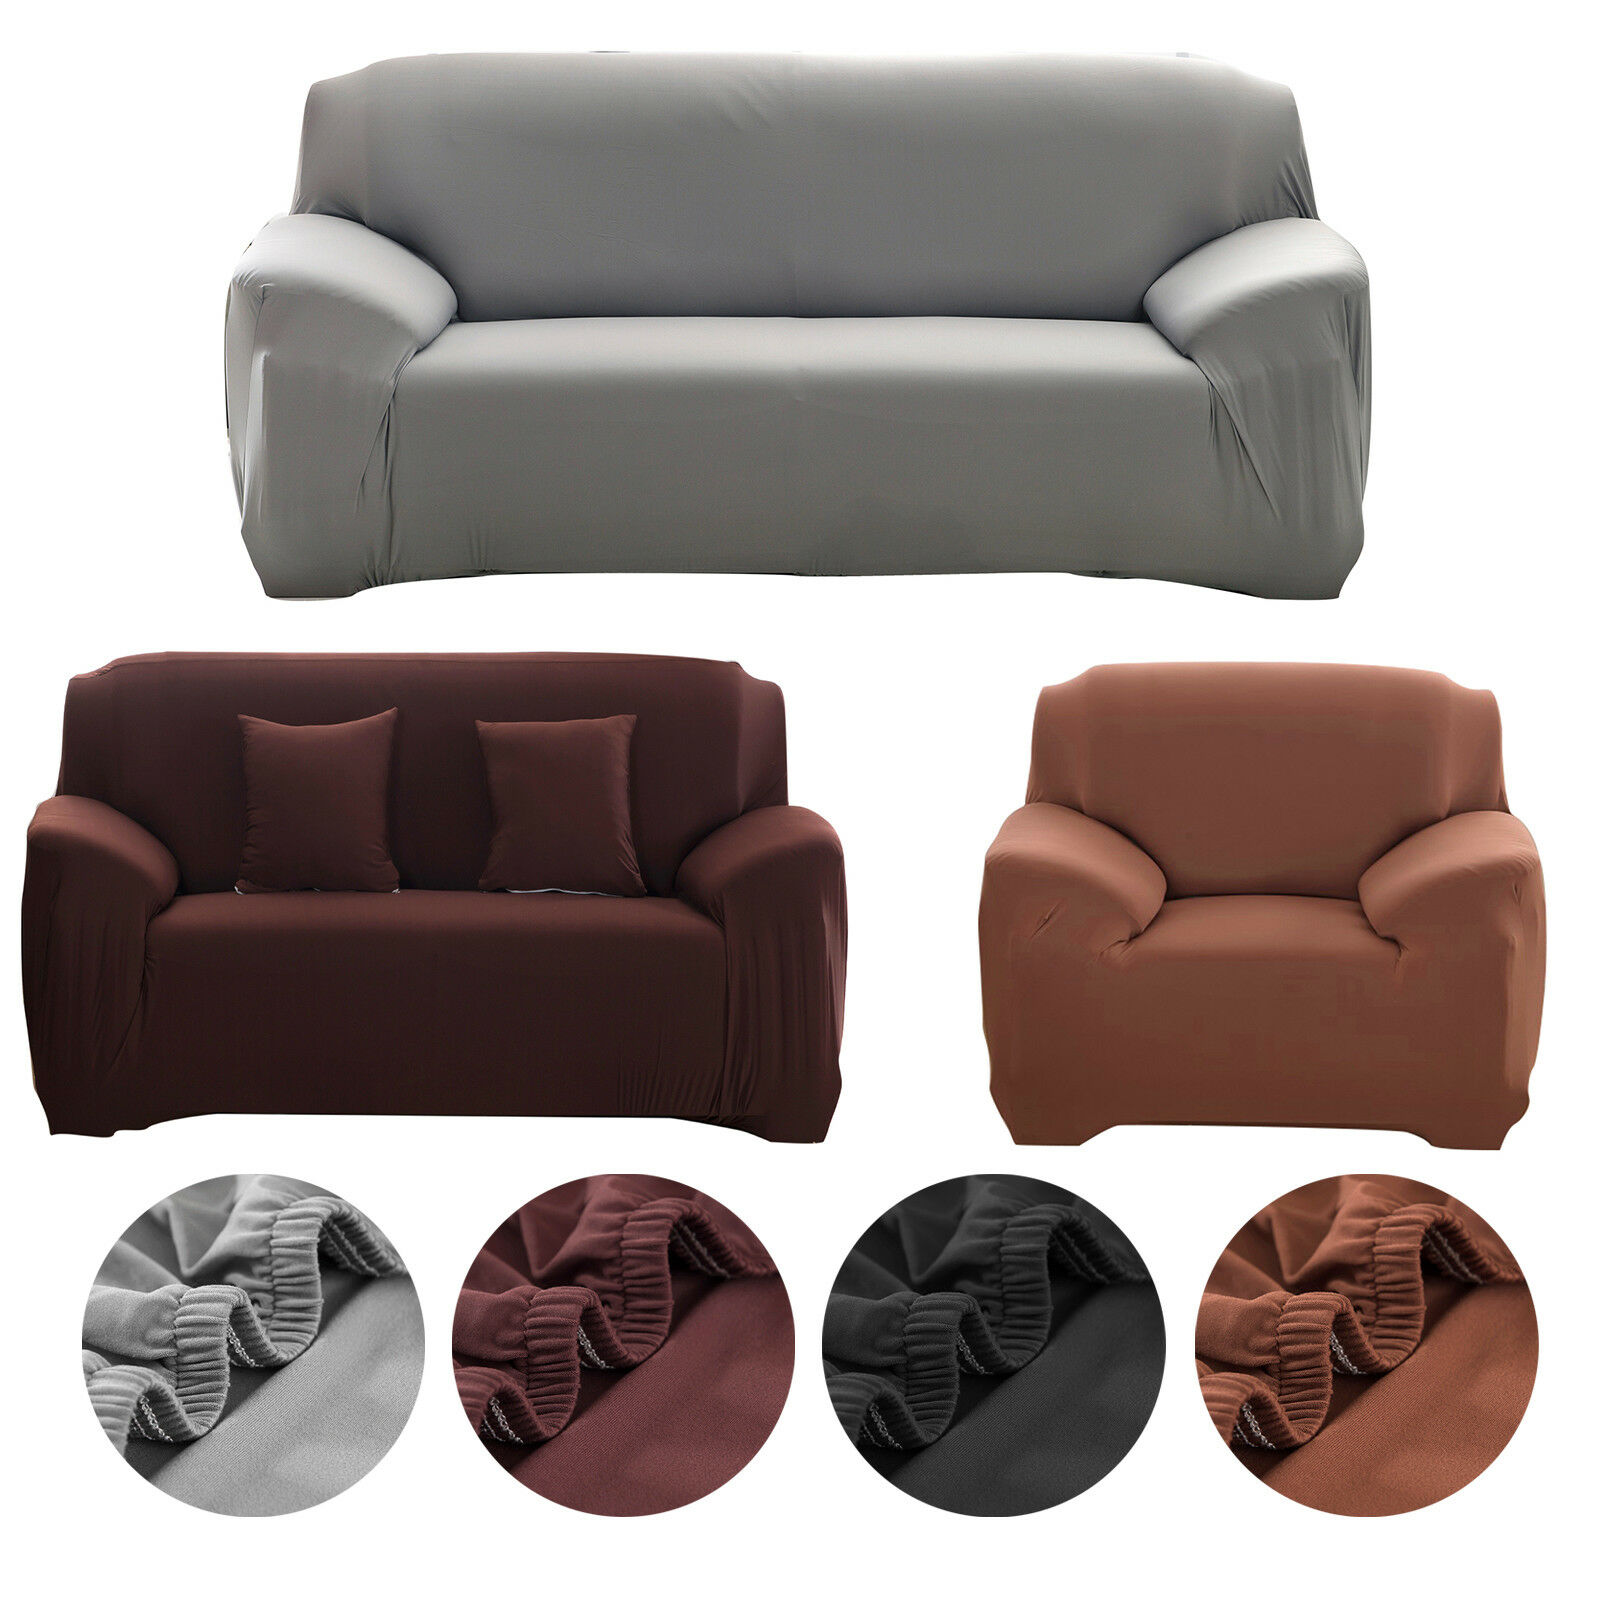 1 2 3 Seater Sofa Slipcover Stretch Protector Soft Couch Cover